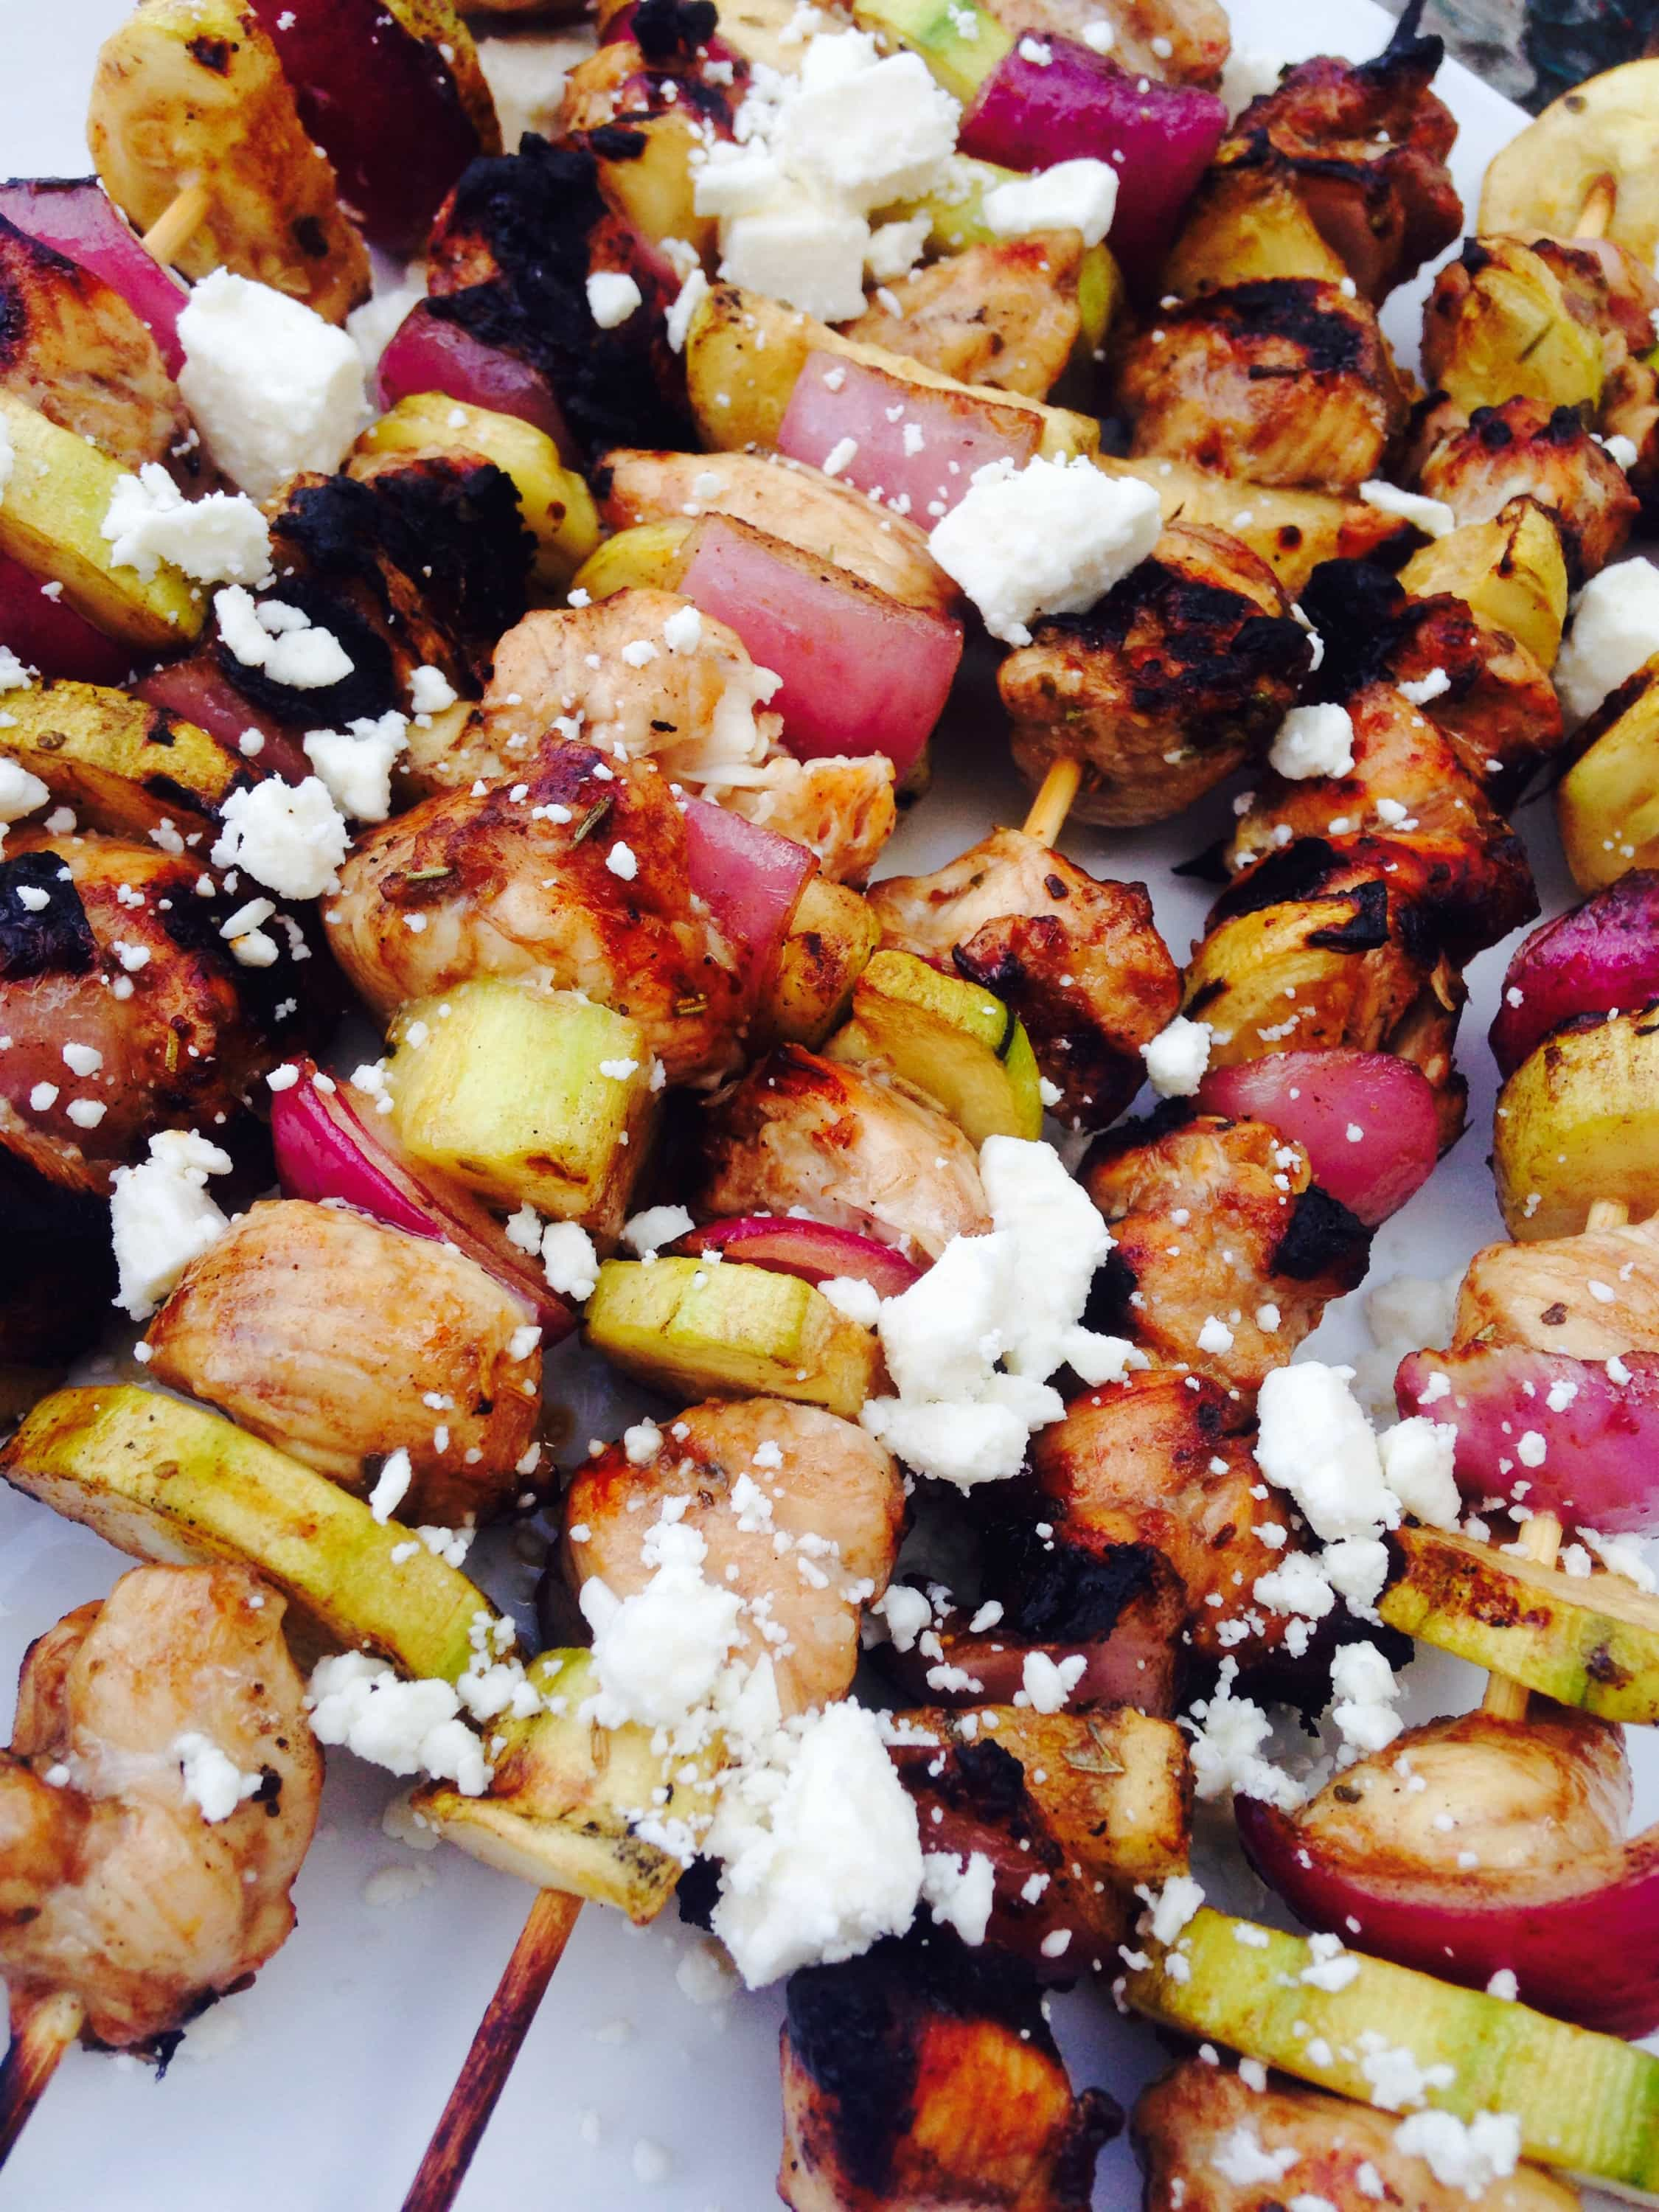 Balsamic marinated chicken, zucchini, and red onion are alternated on skewers and grilled, then topped with feta.